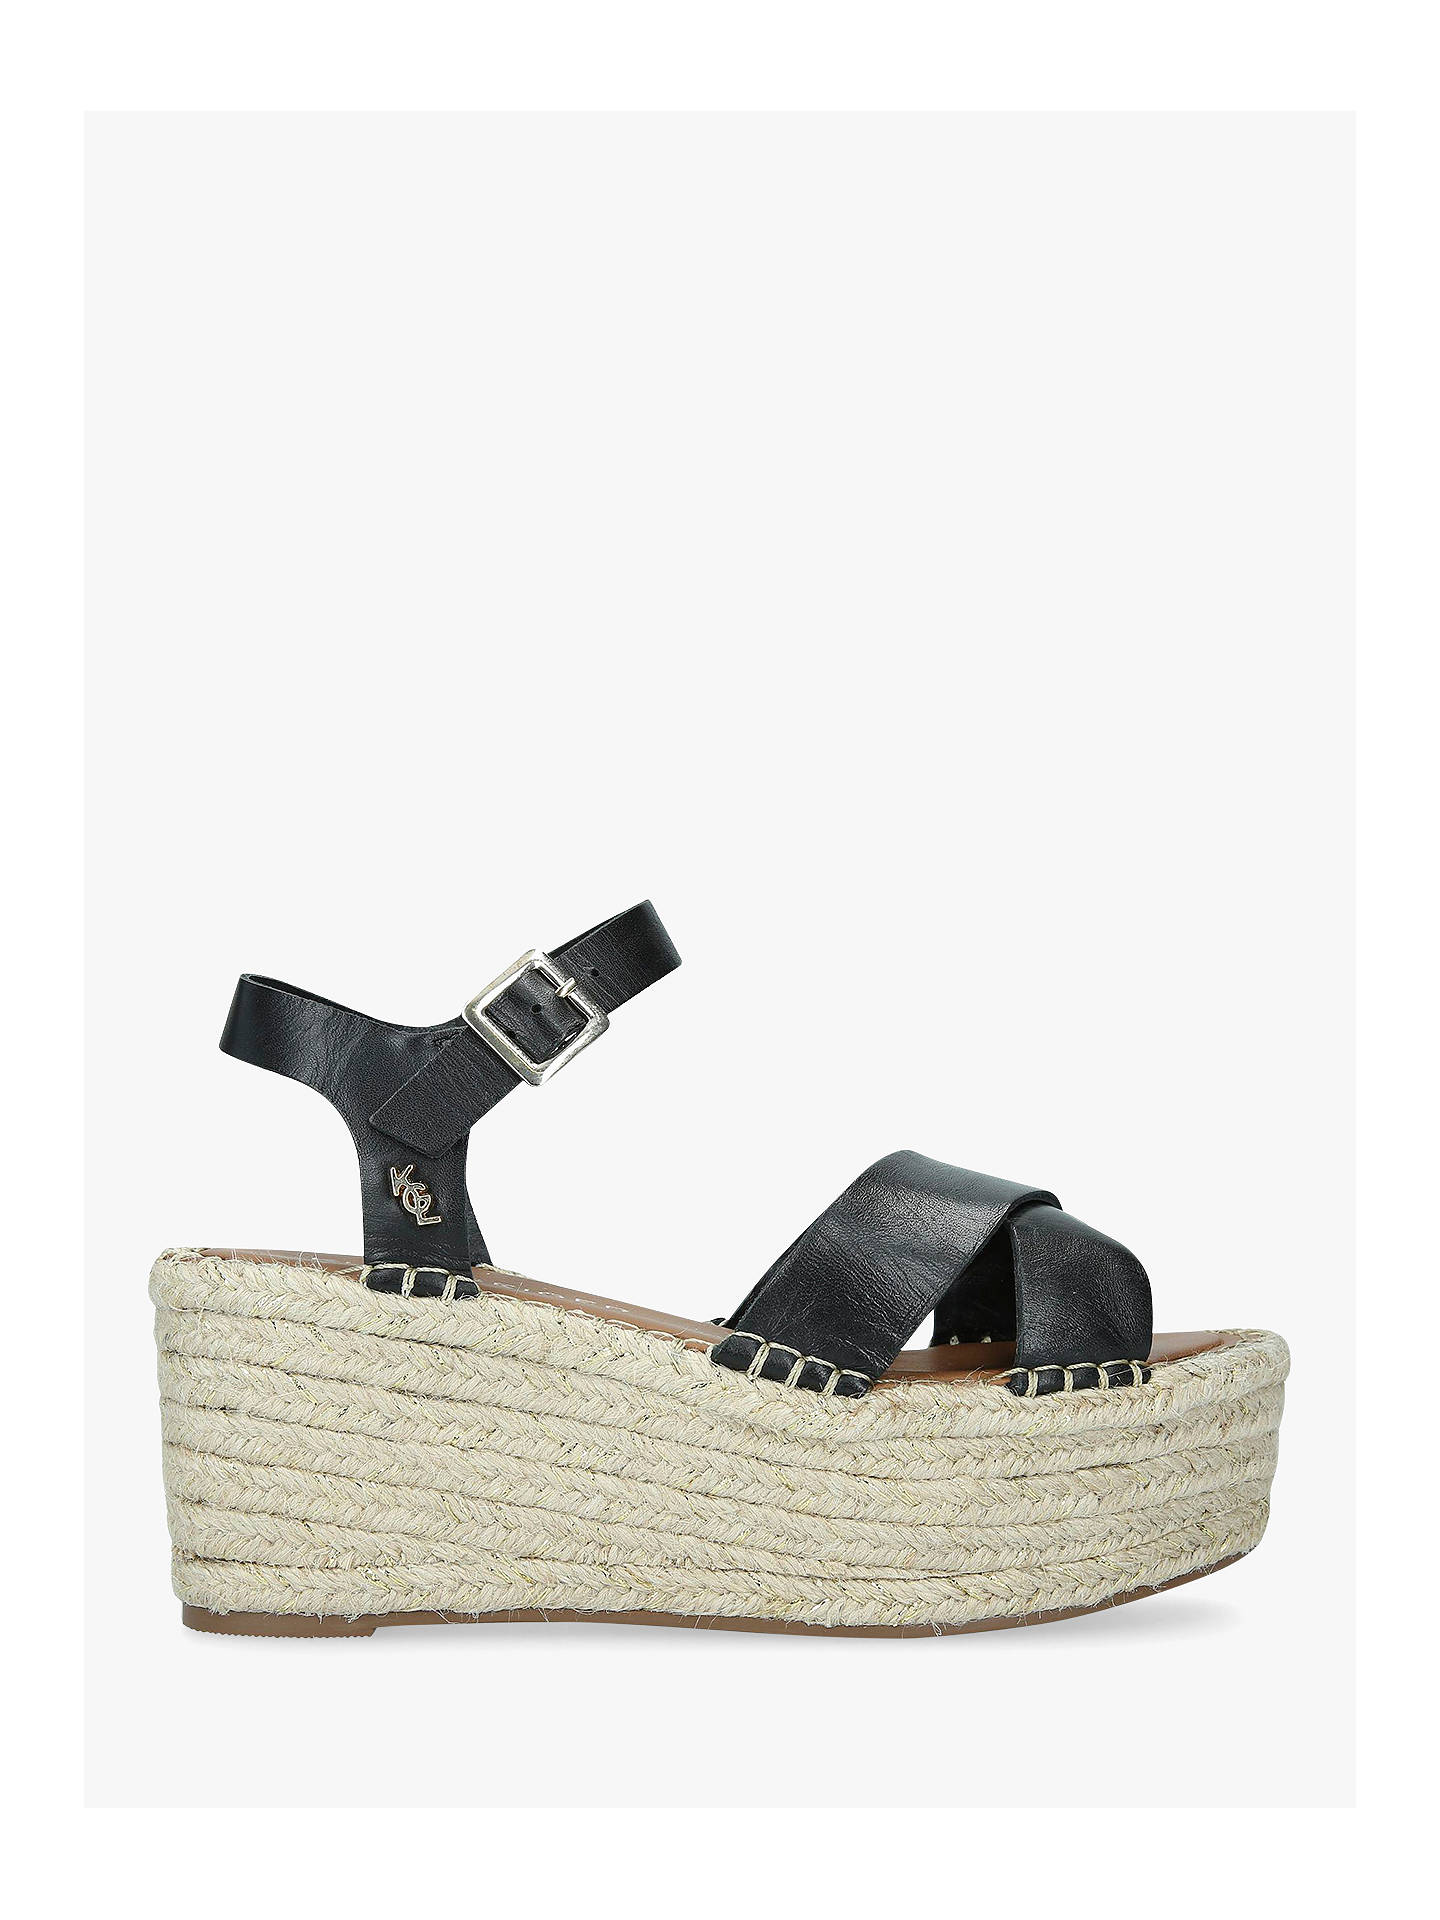 146b481ee4a Kurt Geiger London Arlo Woven Wedge Leather Sandals, Black